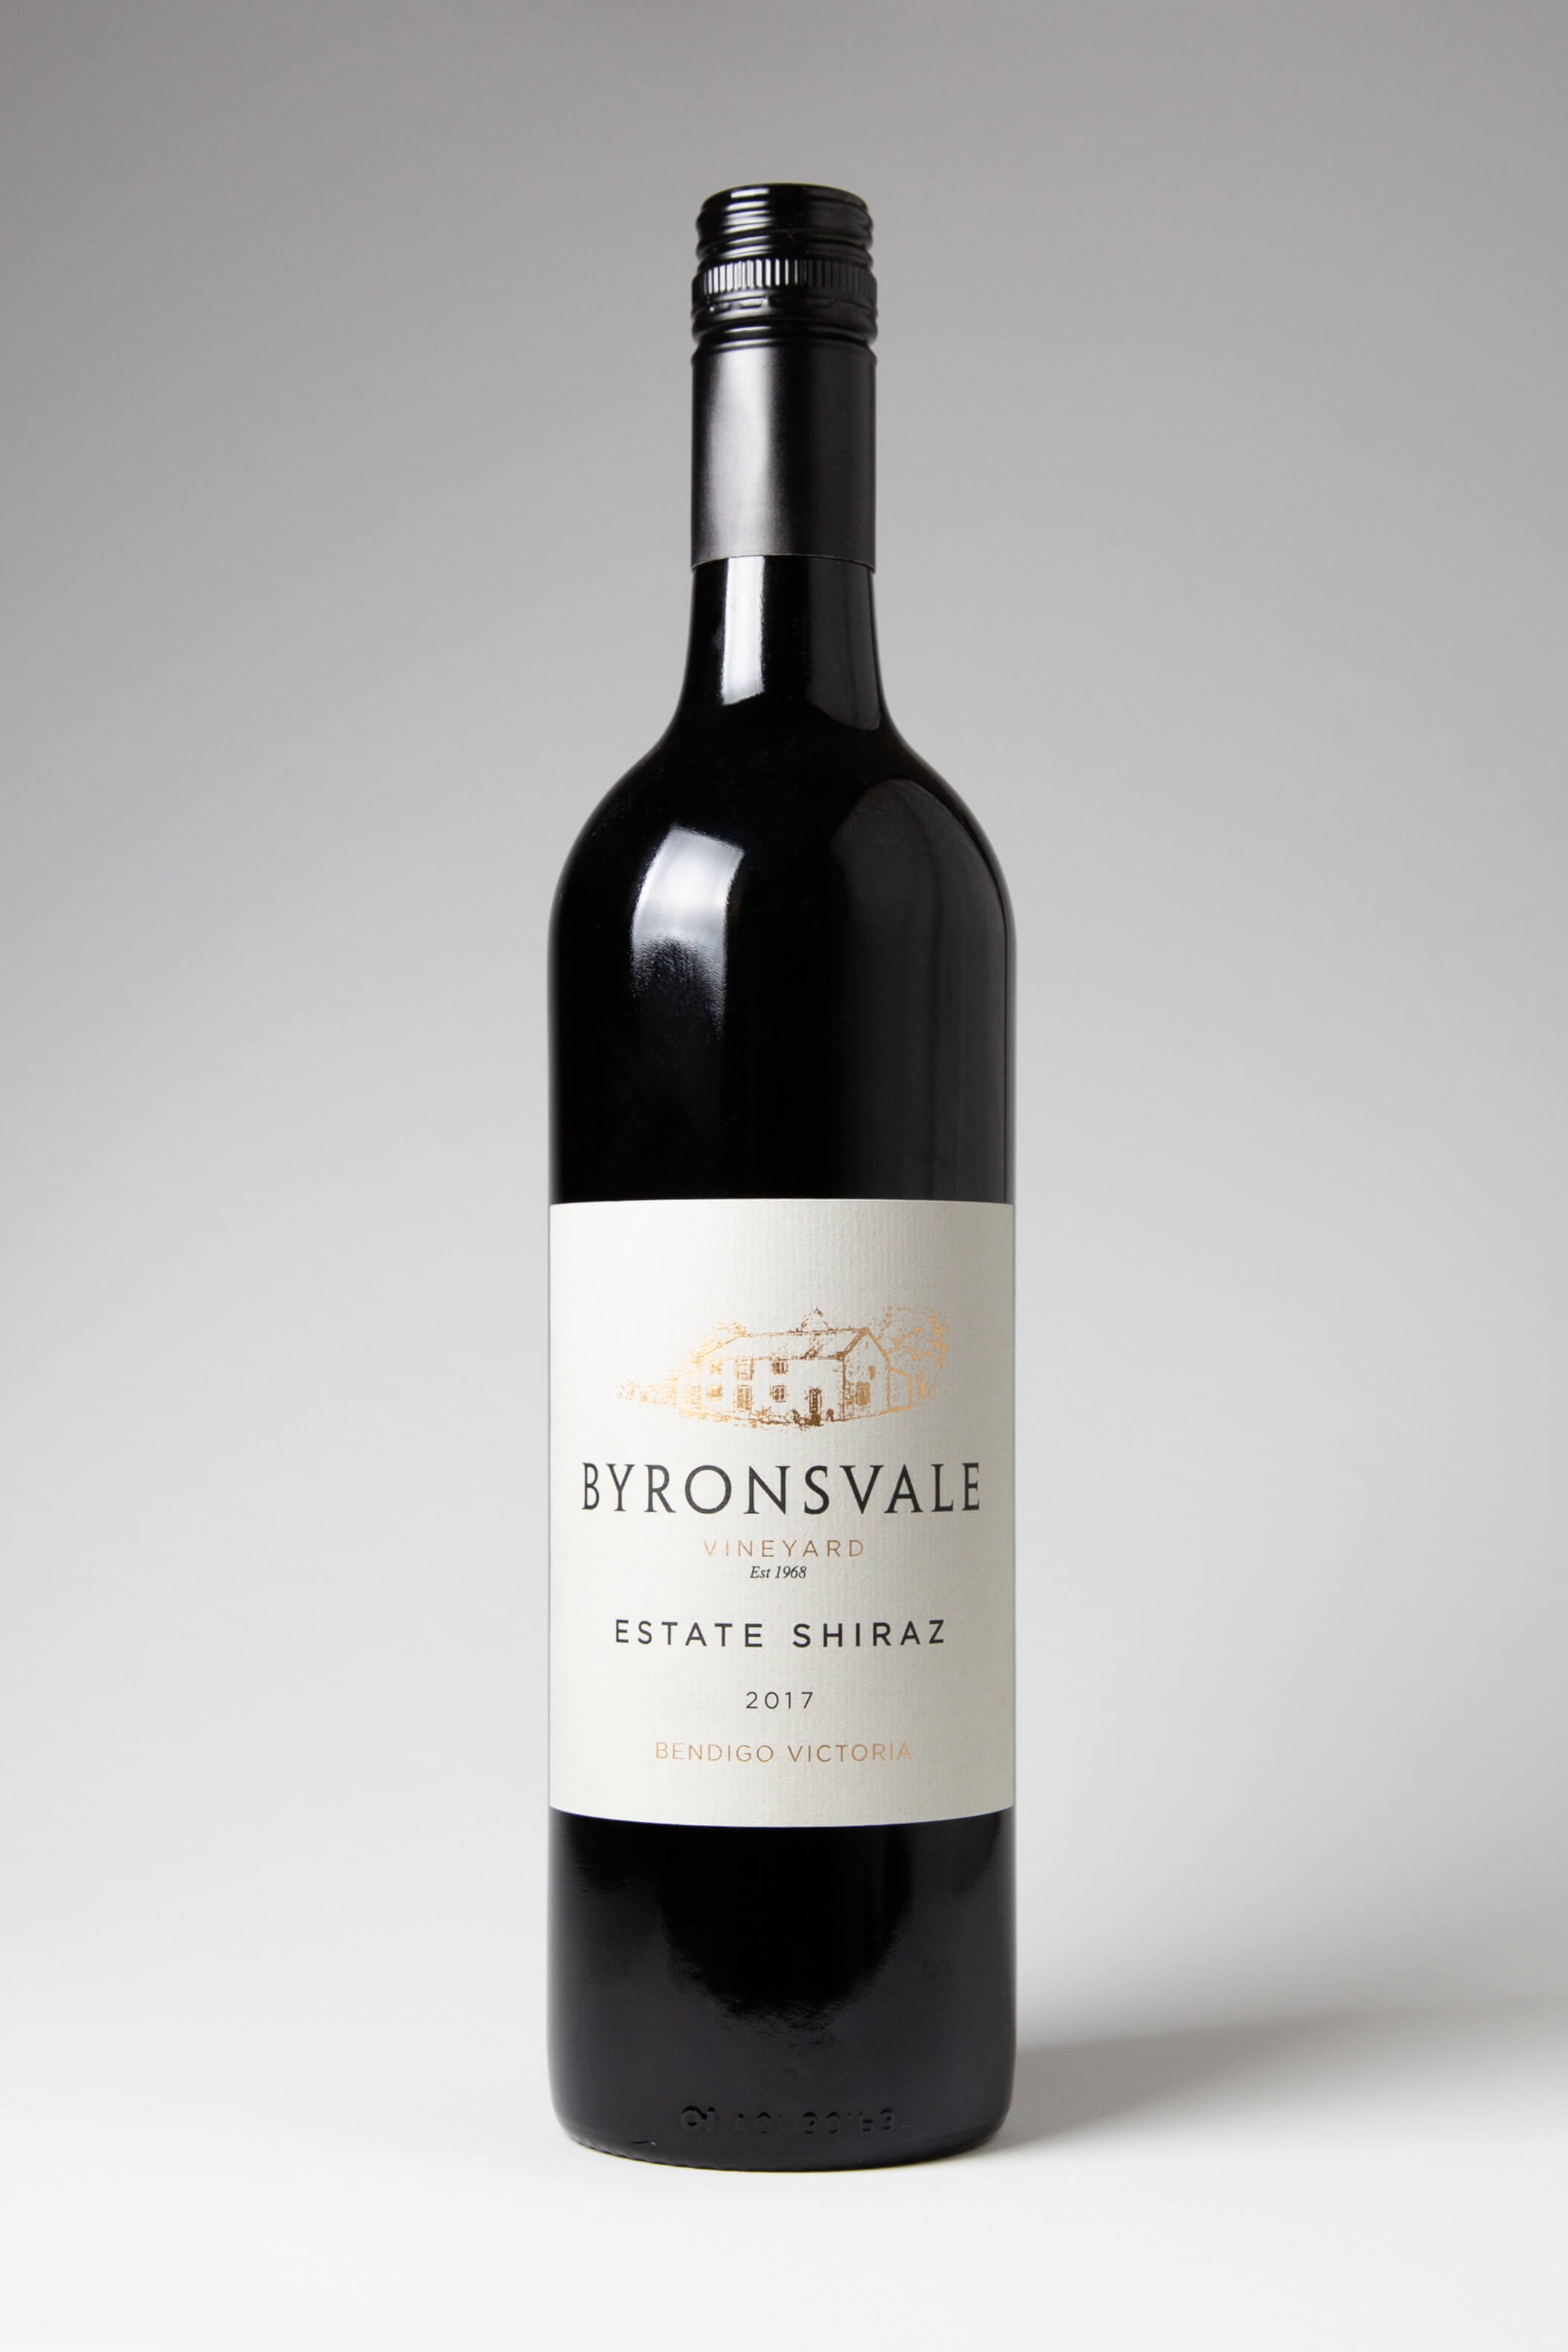 Byronsvale 2017 Estate Shiraz